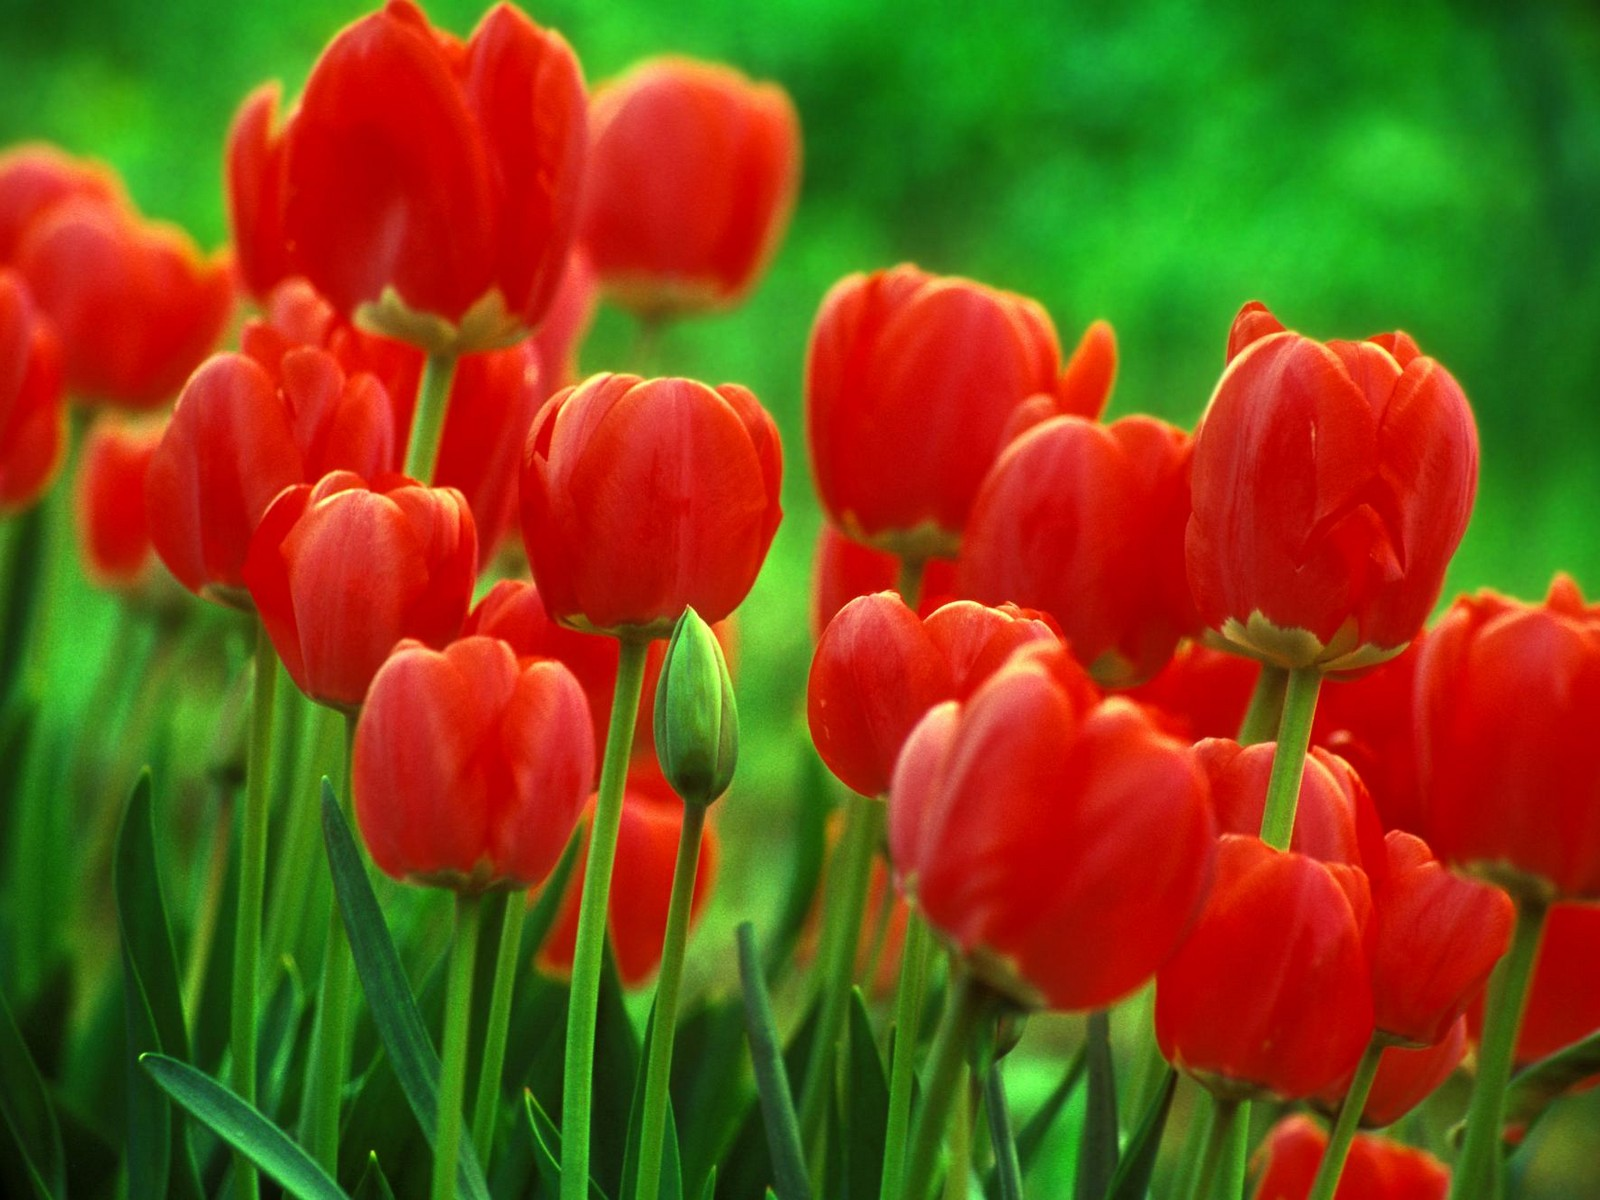 ... flowers wallpaper red tulips flowers wallpaper red tulips flowers